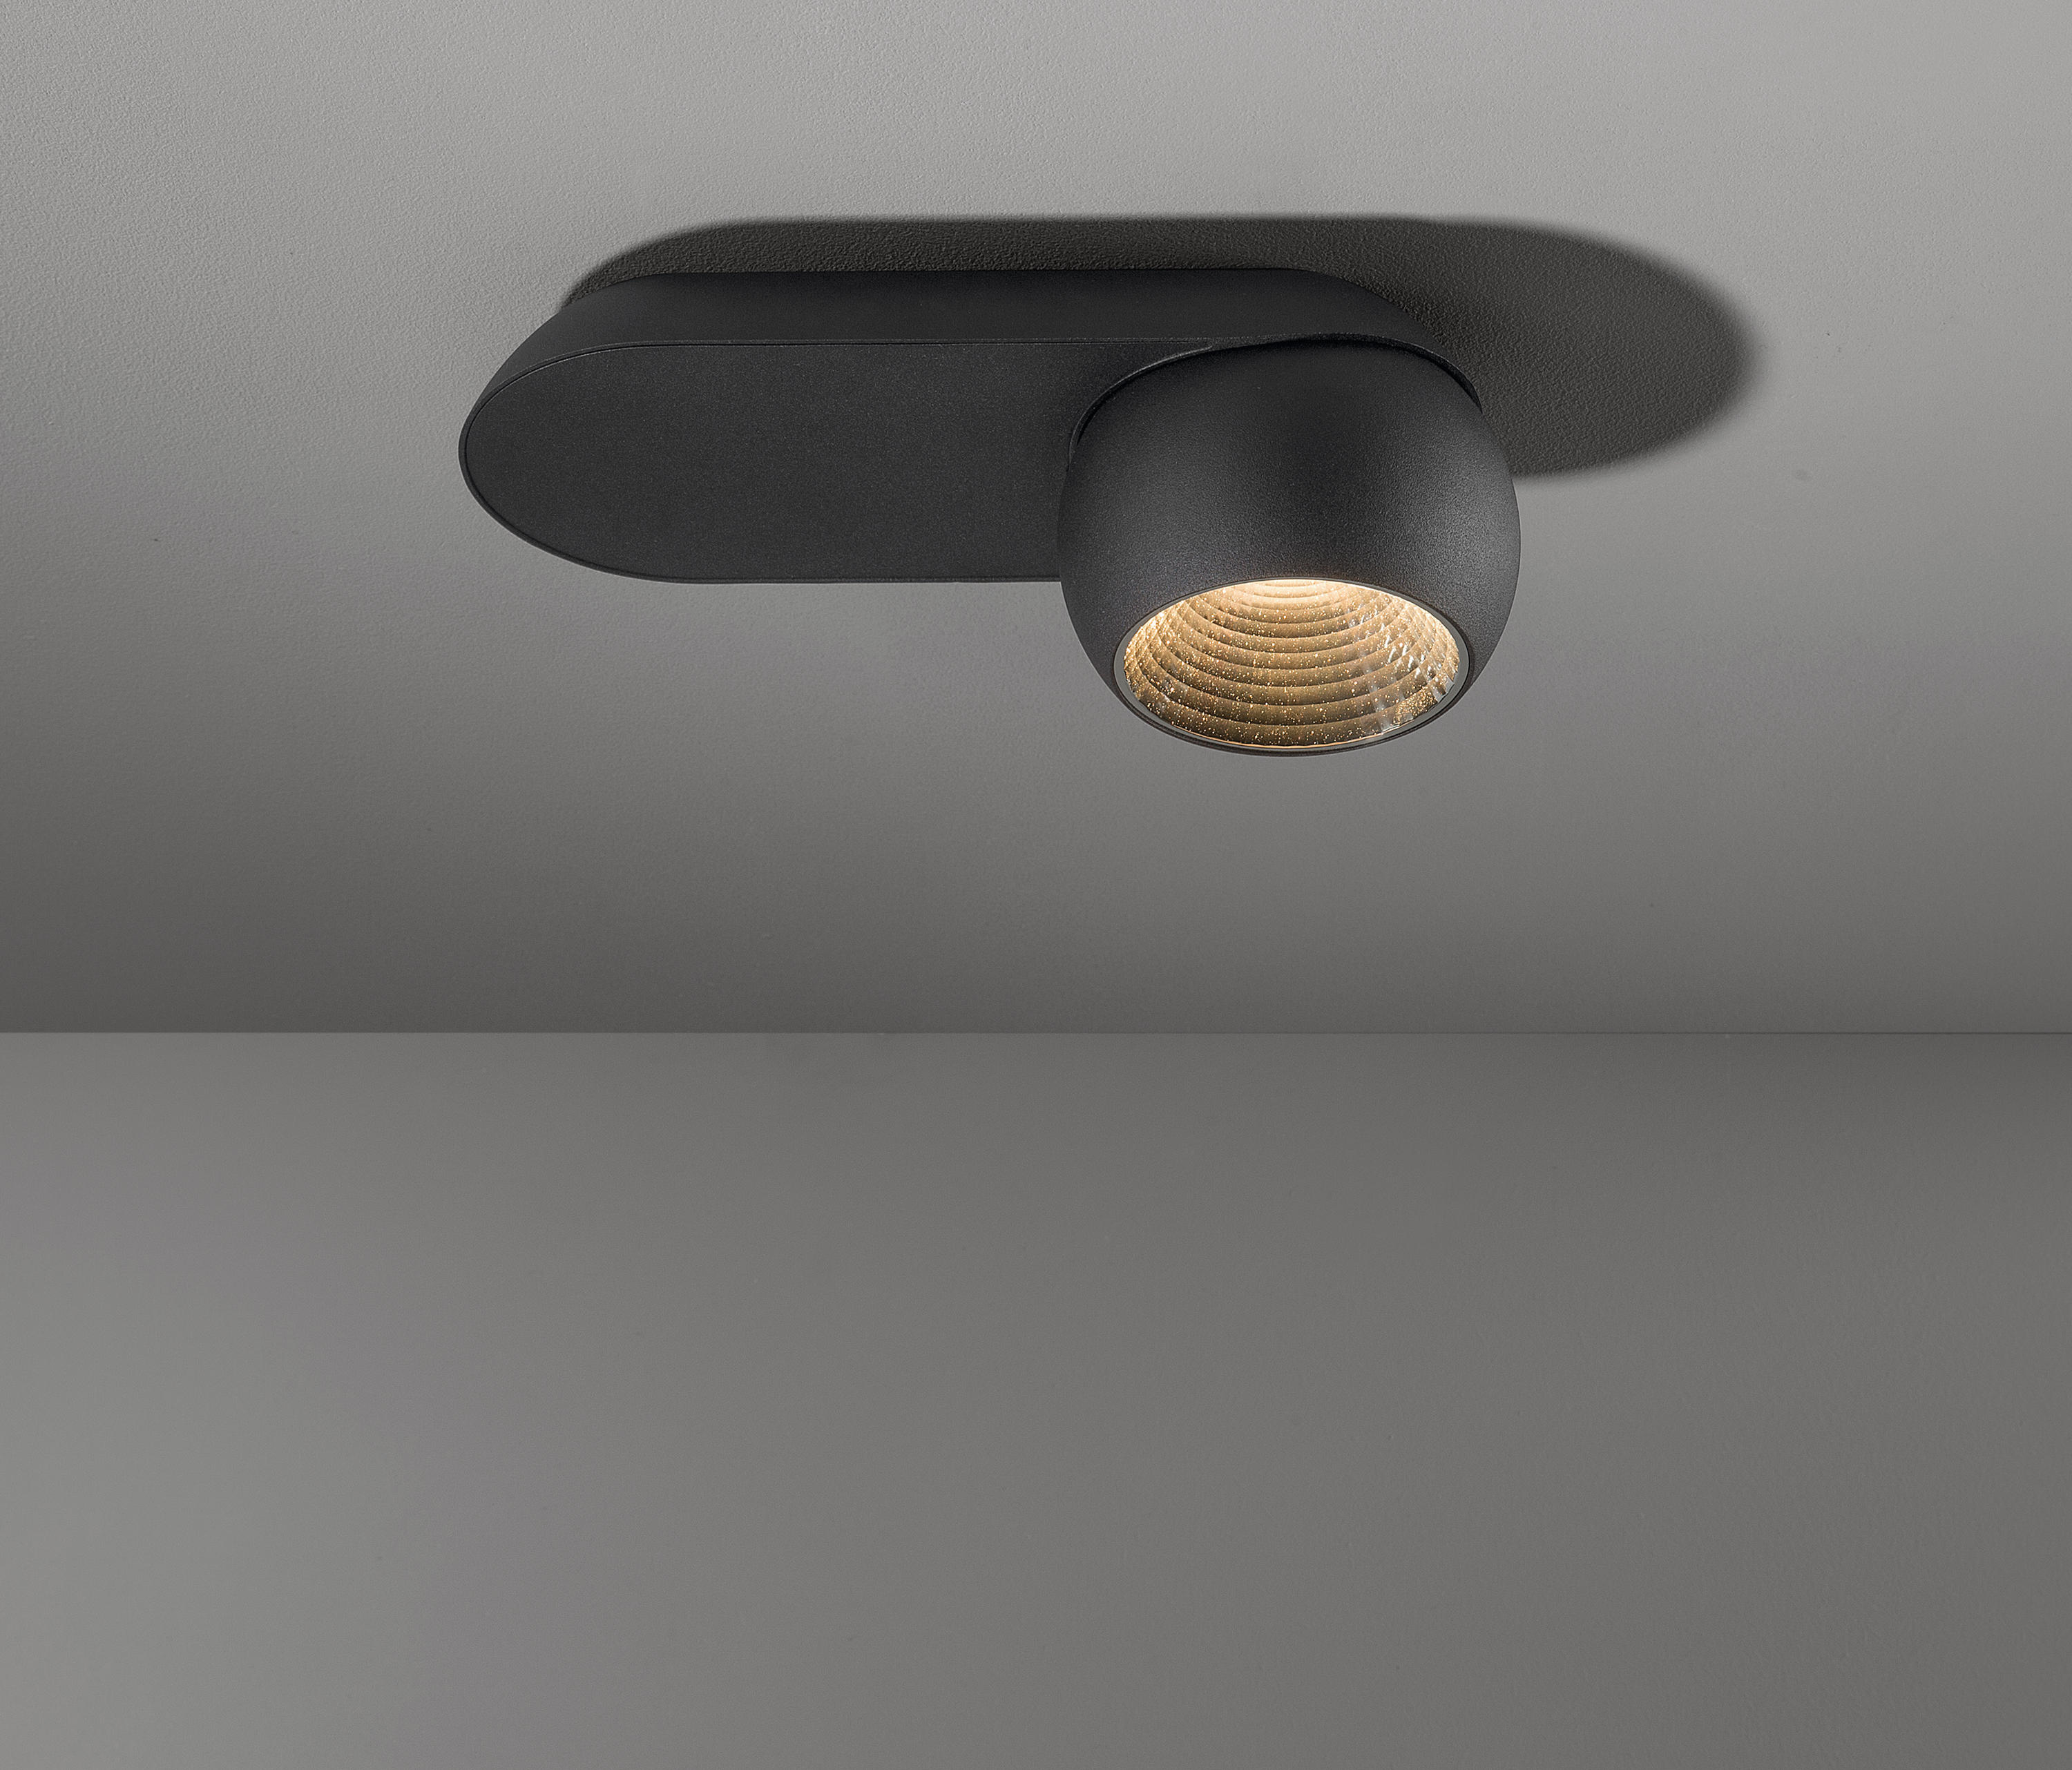 marbul ceiling mounted spotlights from modular lighting. Black Bedroom Furniture Sets. Home Design Ideas